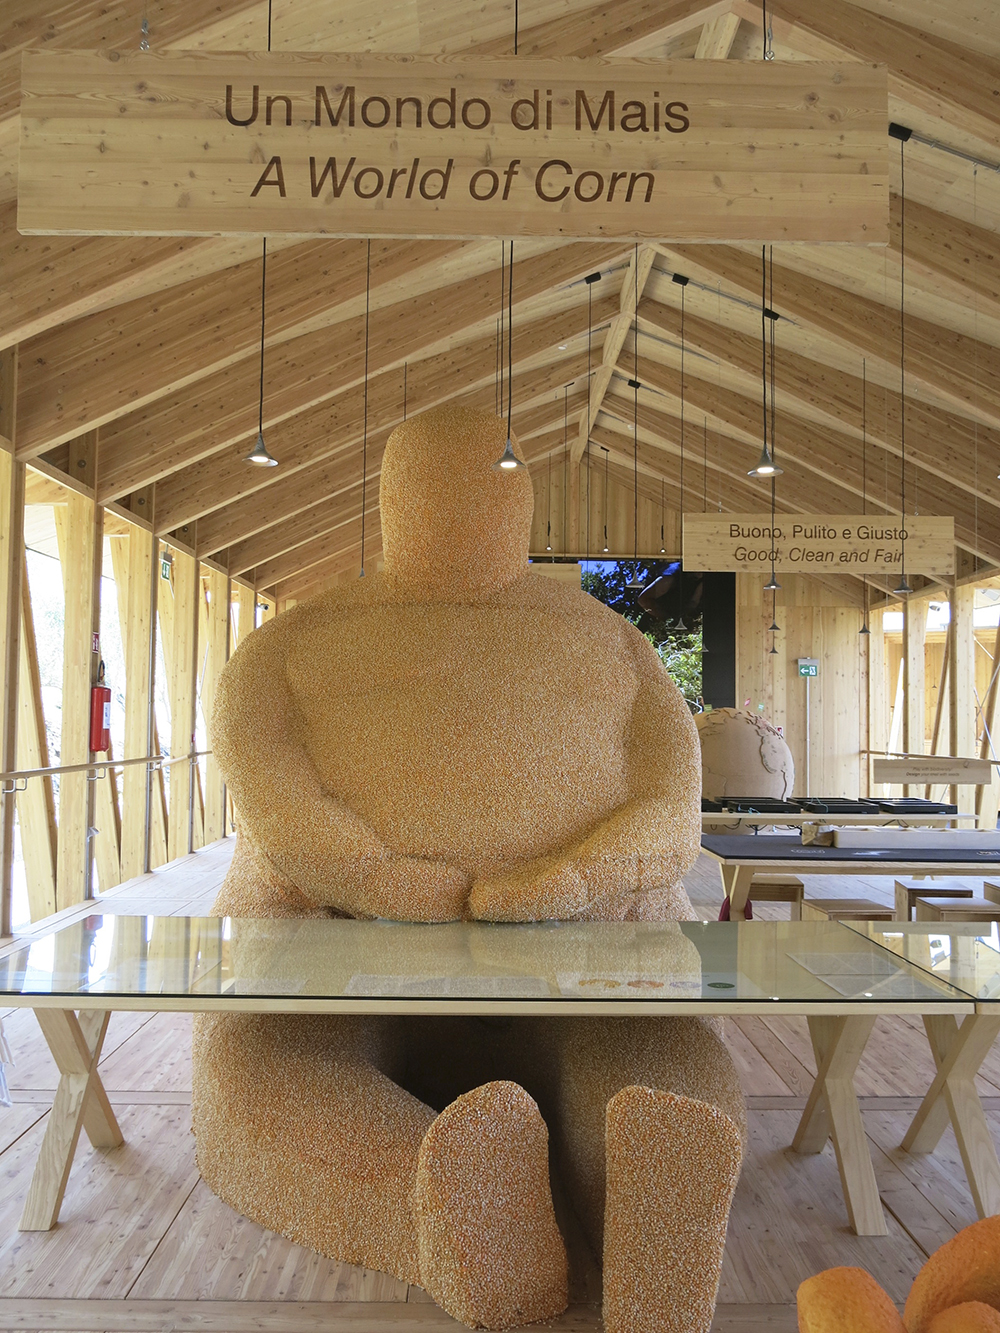 Corny sculpture at Milan Expo